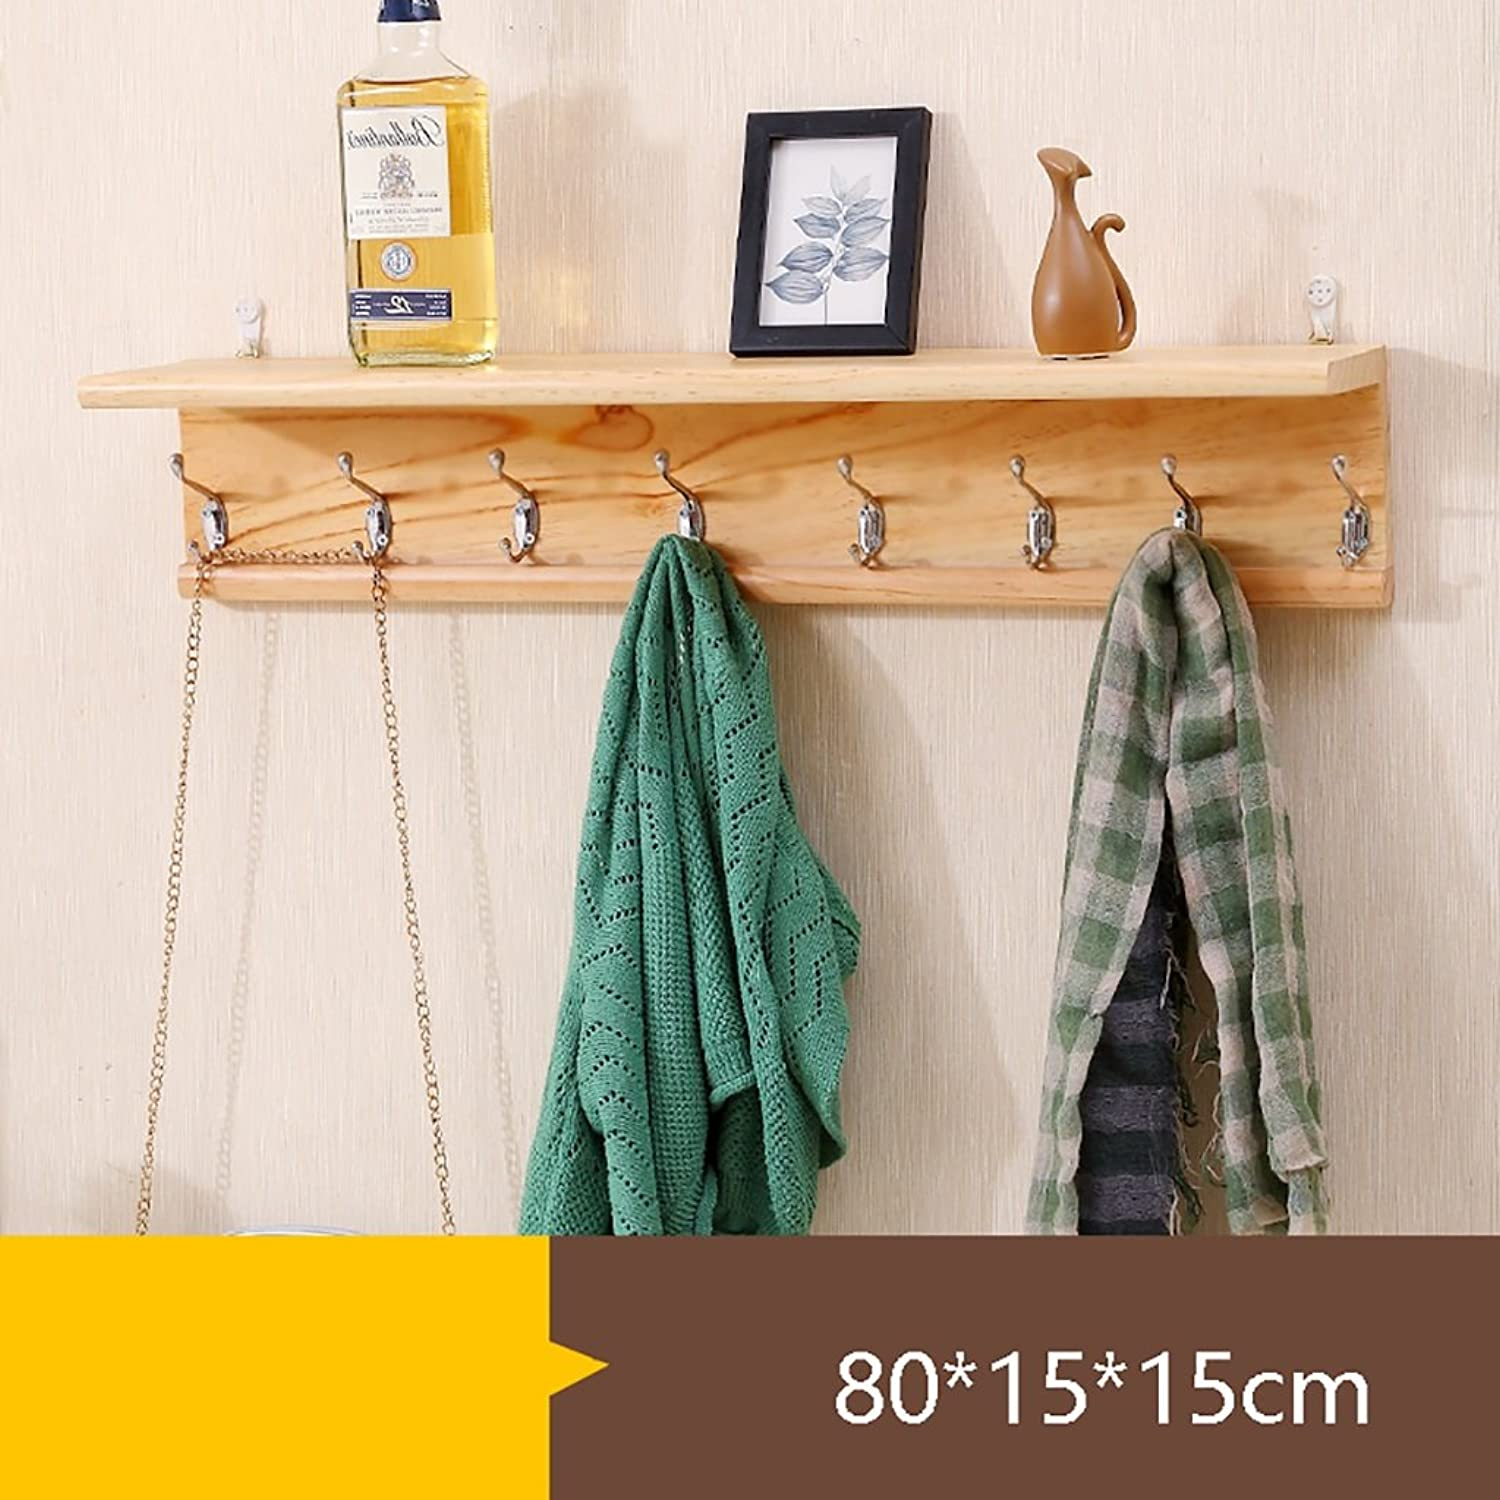 Creative Solid Wood Wall color Coat Rack, Wall Hanging Multi-Purpose Shelf shelter, 3 Size Options (Size   80  15  15cm)